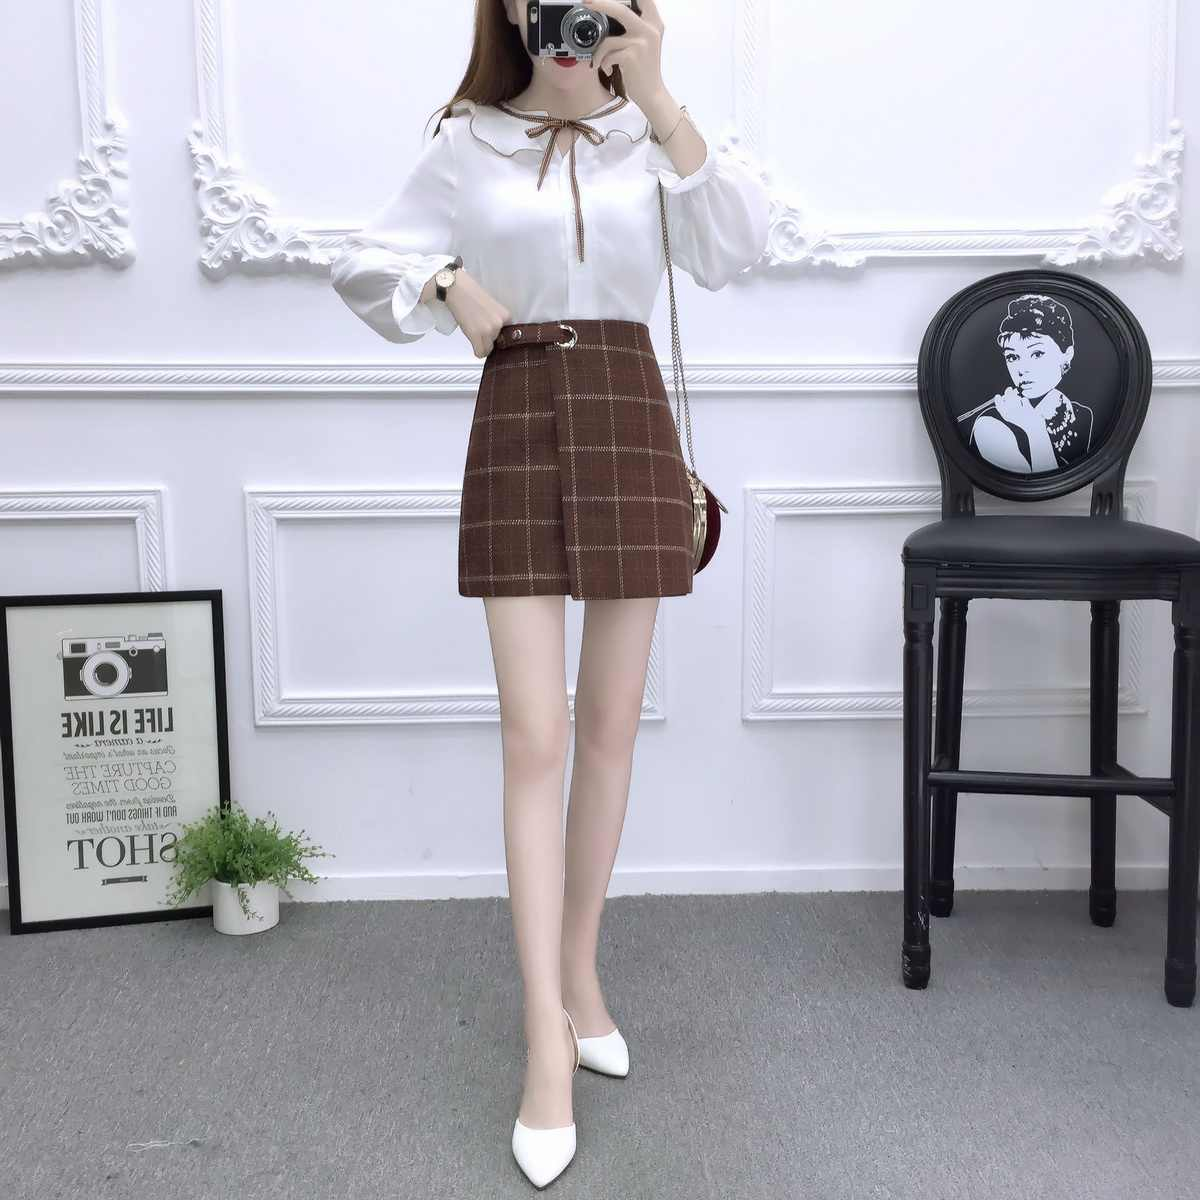 c97f1d719c90 ... Korean fashion suits women chiffon blouse top & bust skirt of tall  waist cloth grid two ...